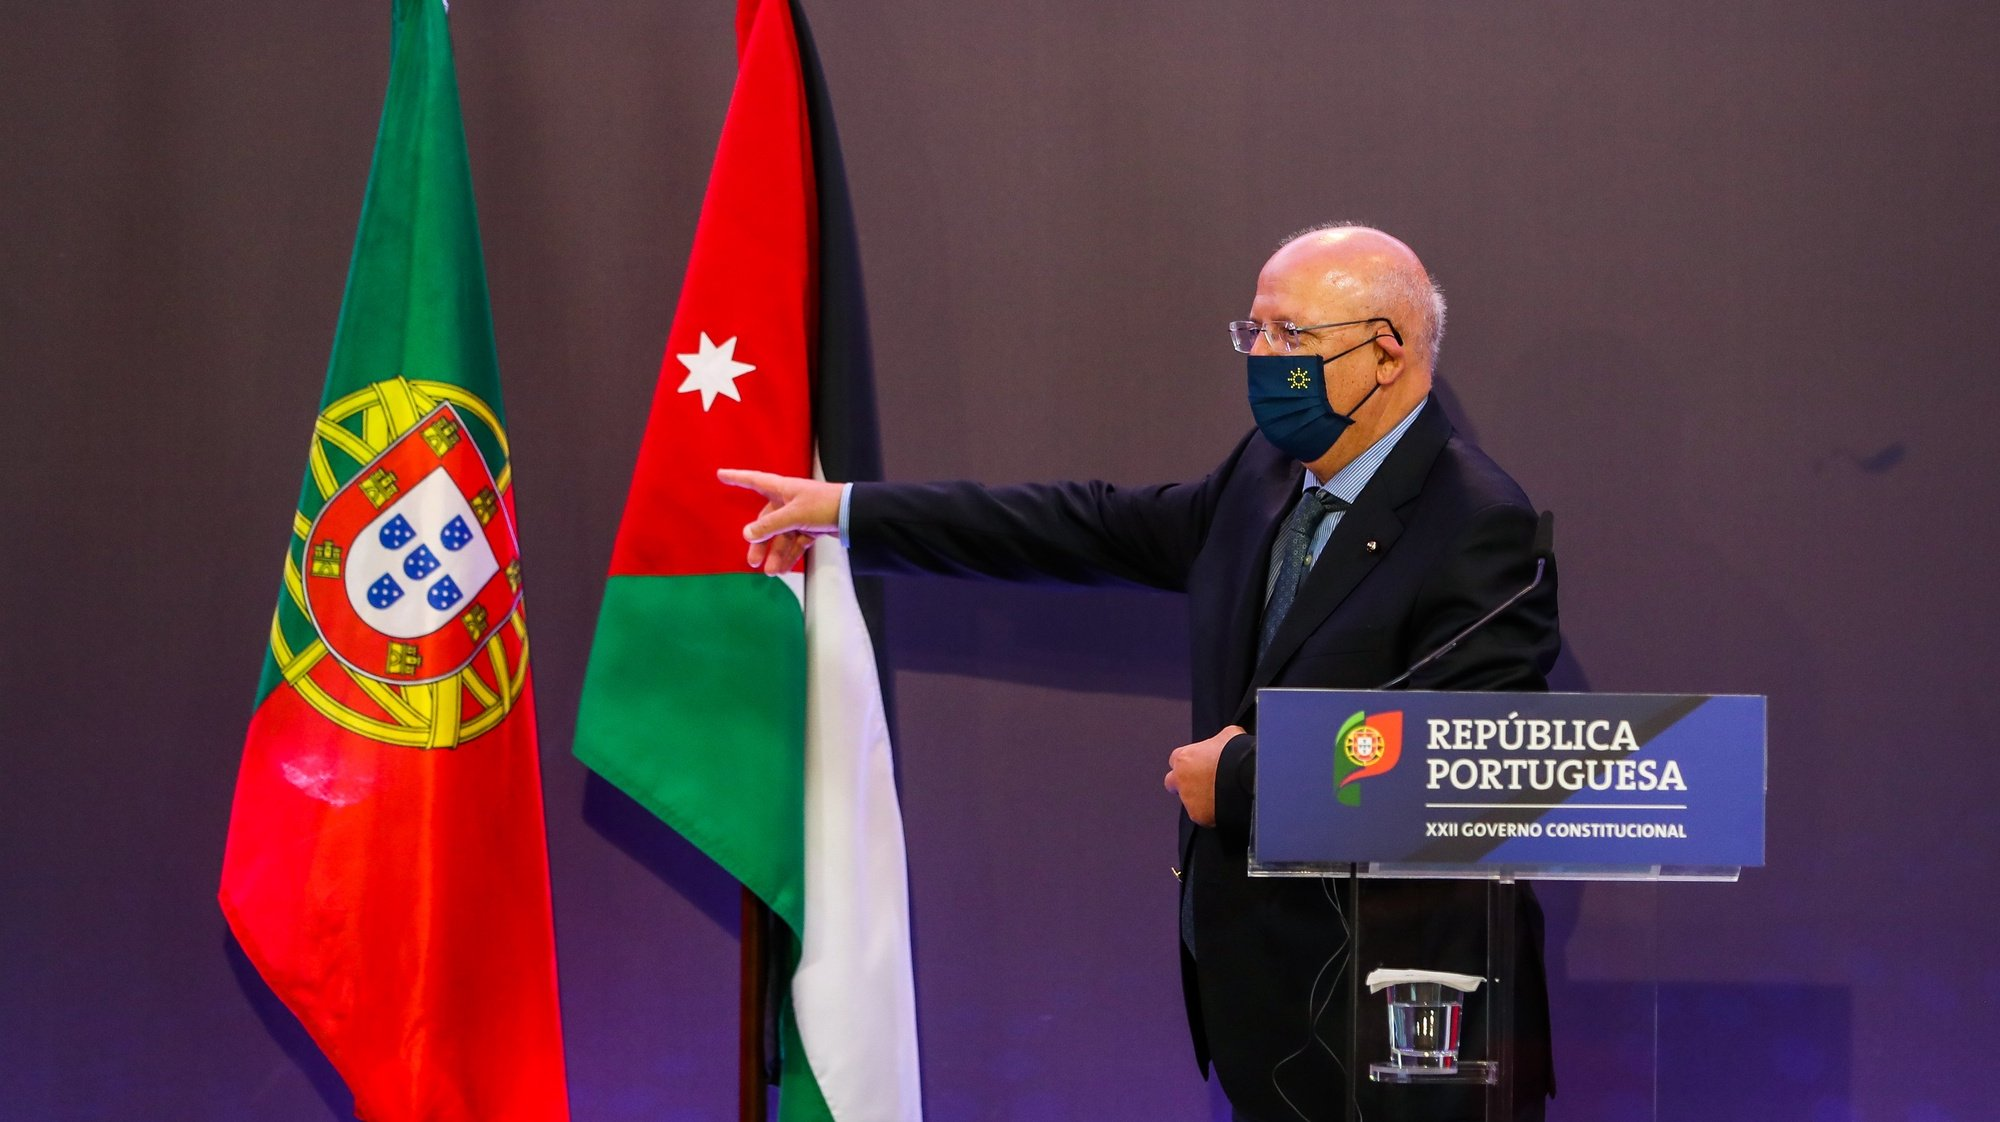 Portuguese Foreign Affairs Minister, Augusto Santos Silva, holds a press conference with his Jordan counterpart, Ayman Hussein Abdullah Al-Safadi, following the Informal meeting of Foreign Affairs Ministers - Gymnich included in the official program of the Portuguese Presidency of the Council of the European Union in Lisbon, Portugal, 27 May 2021. The main items on the agenda will be EU-Africa relations, the unresolved conflicts in the Eastern Neighbourhood and the Indo-Pacific region. JOSE SENA GOULAO/LUSA